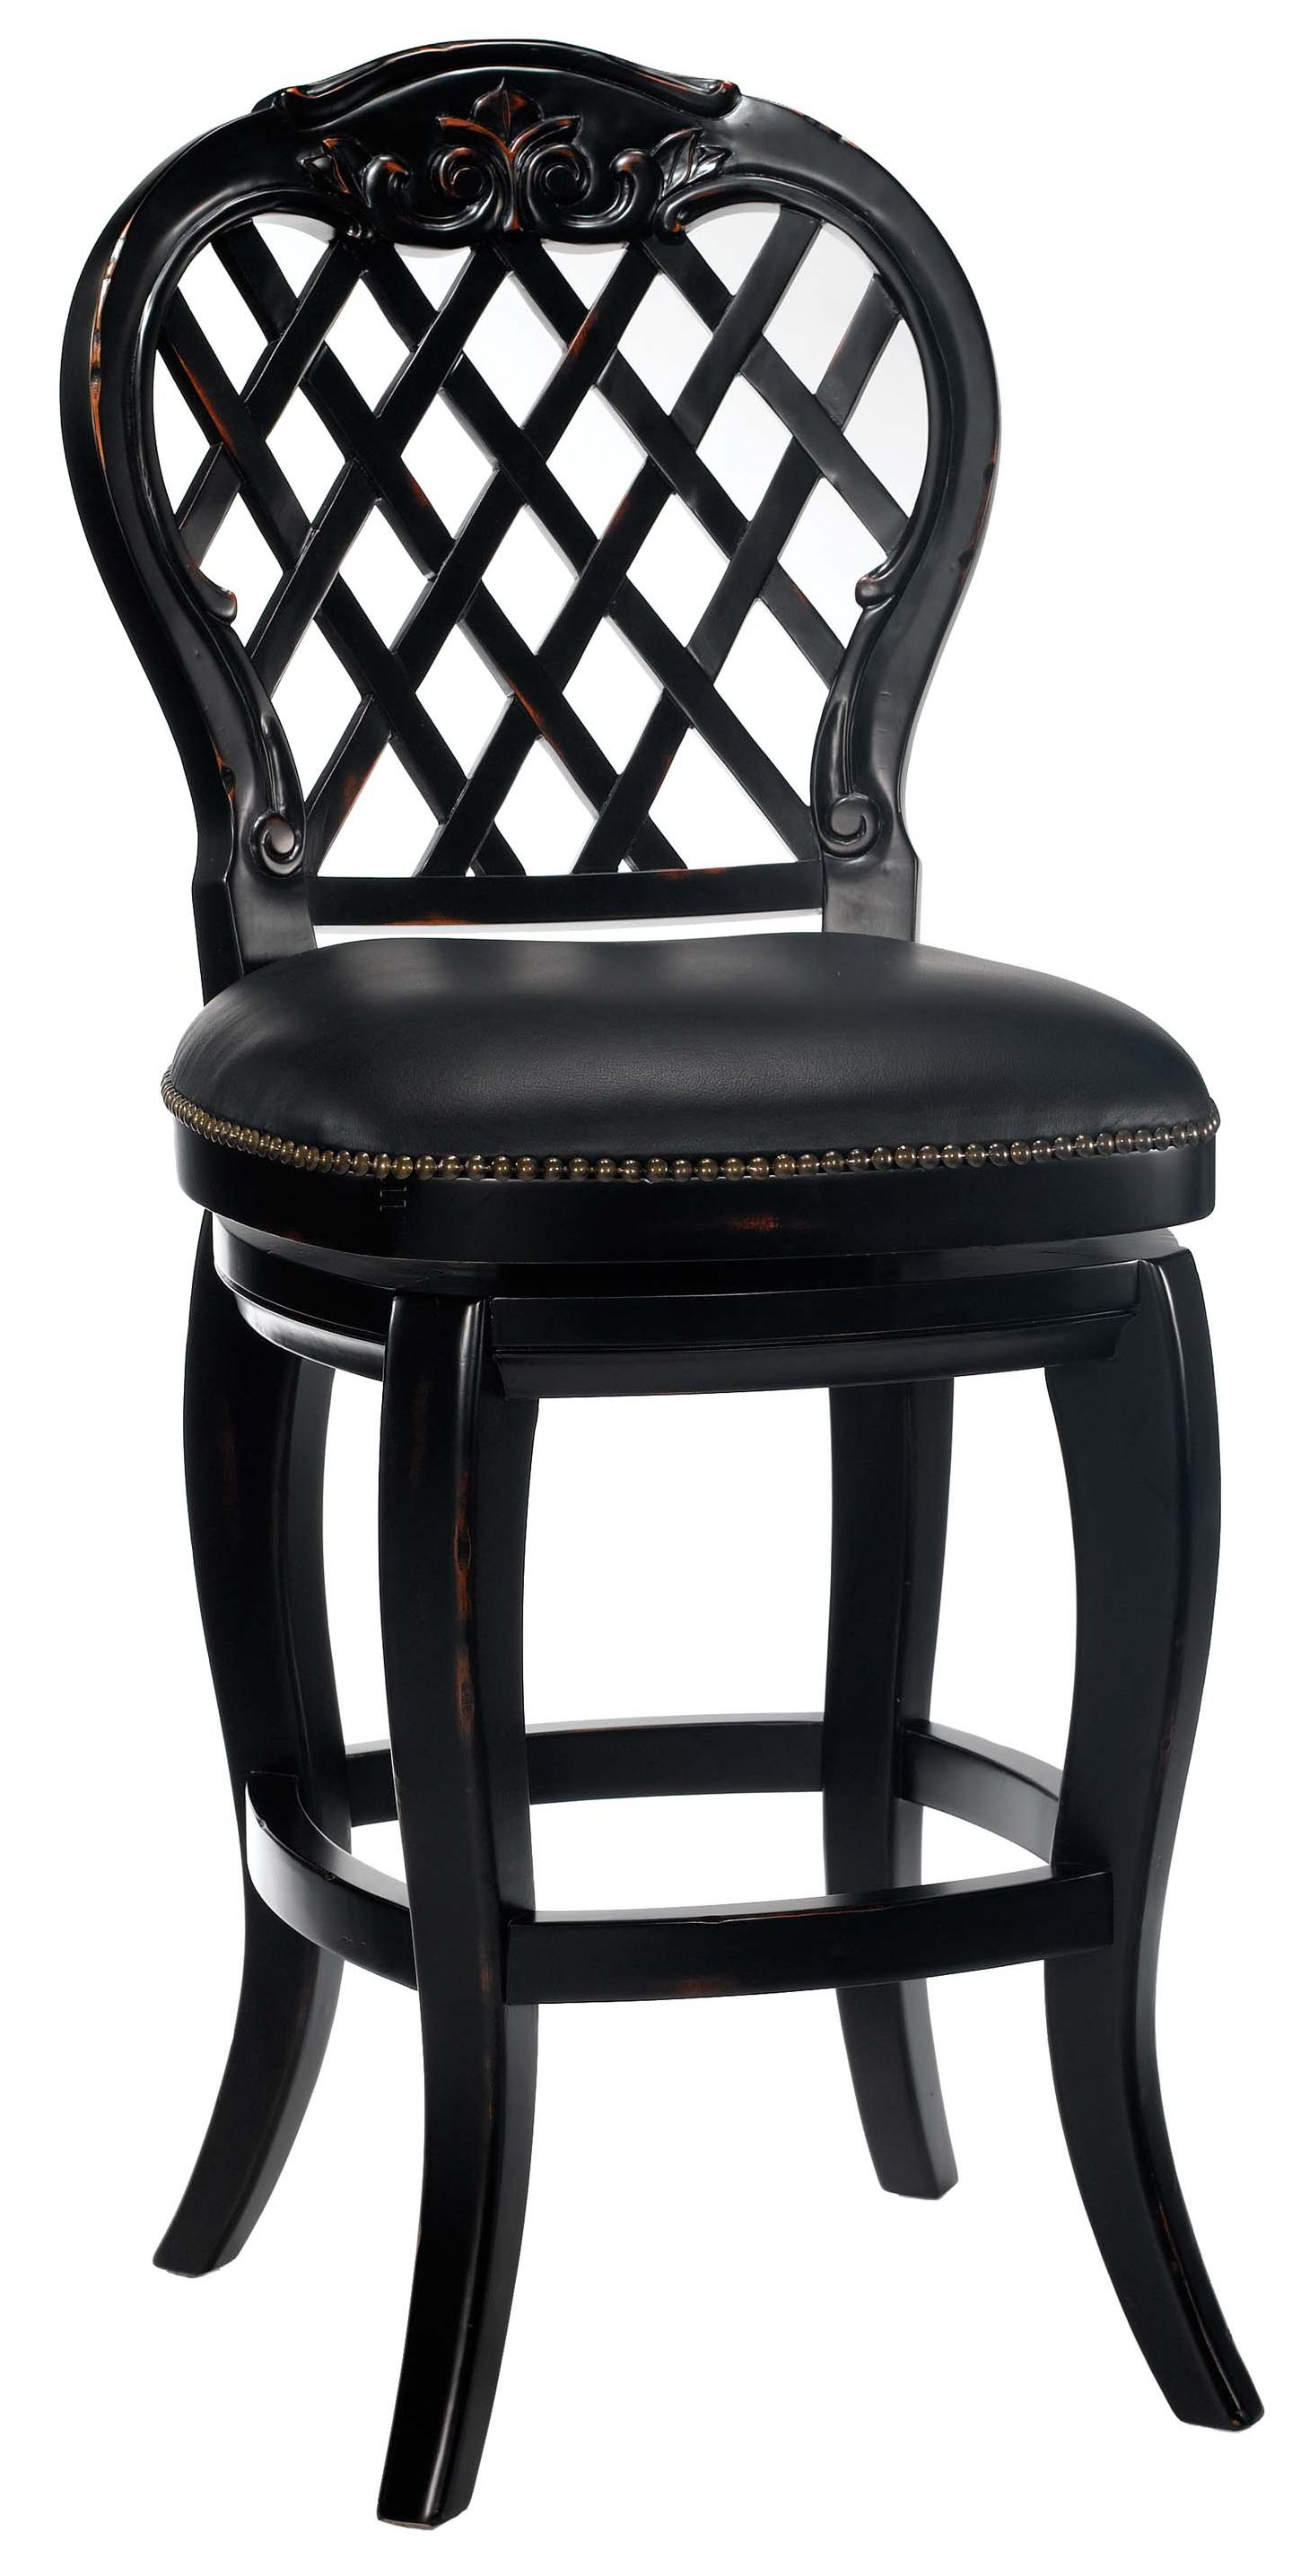 "Wood Stools 26"" Counter Height Braxton Stool by Hillsdale at VanDrie Home Furnishings"